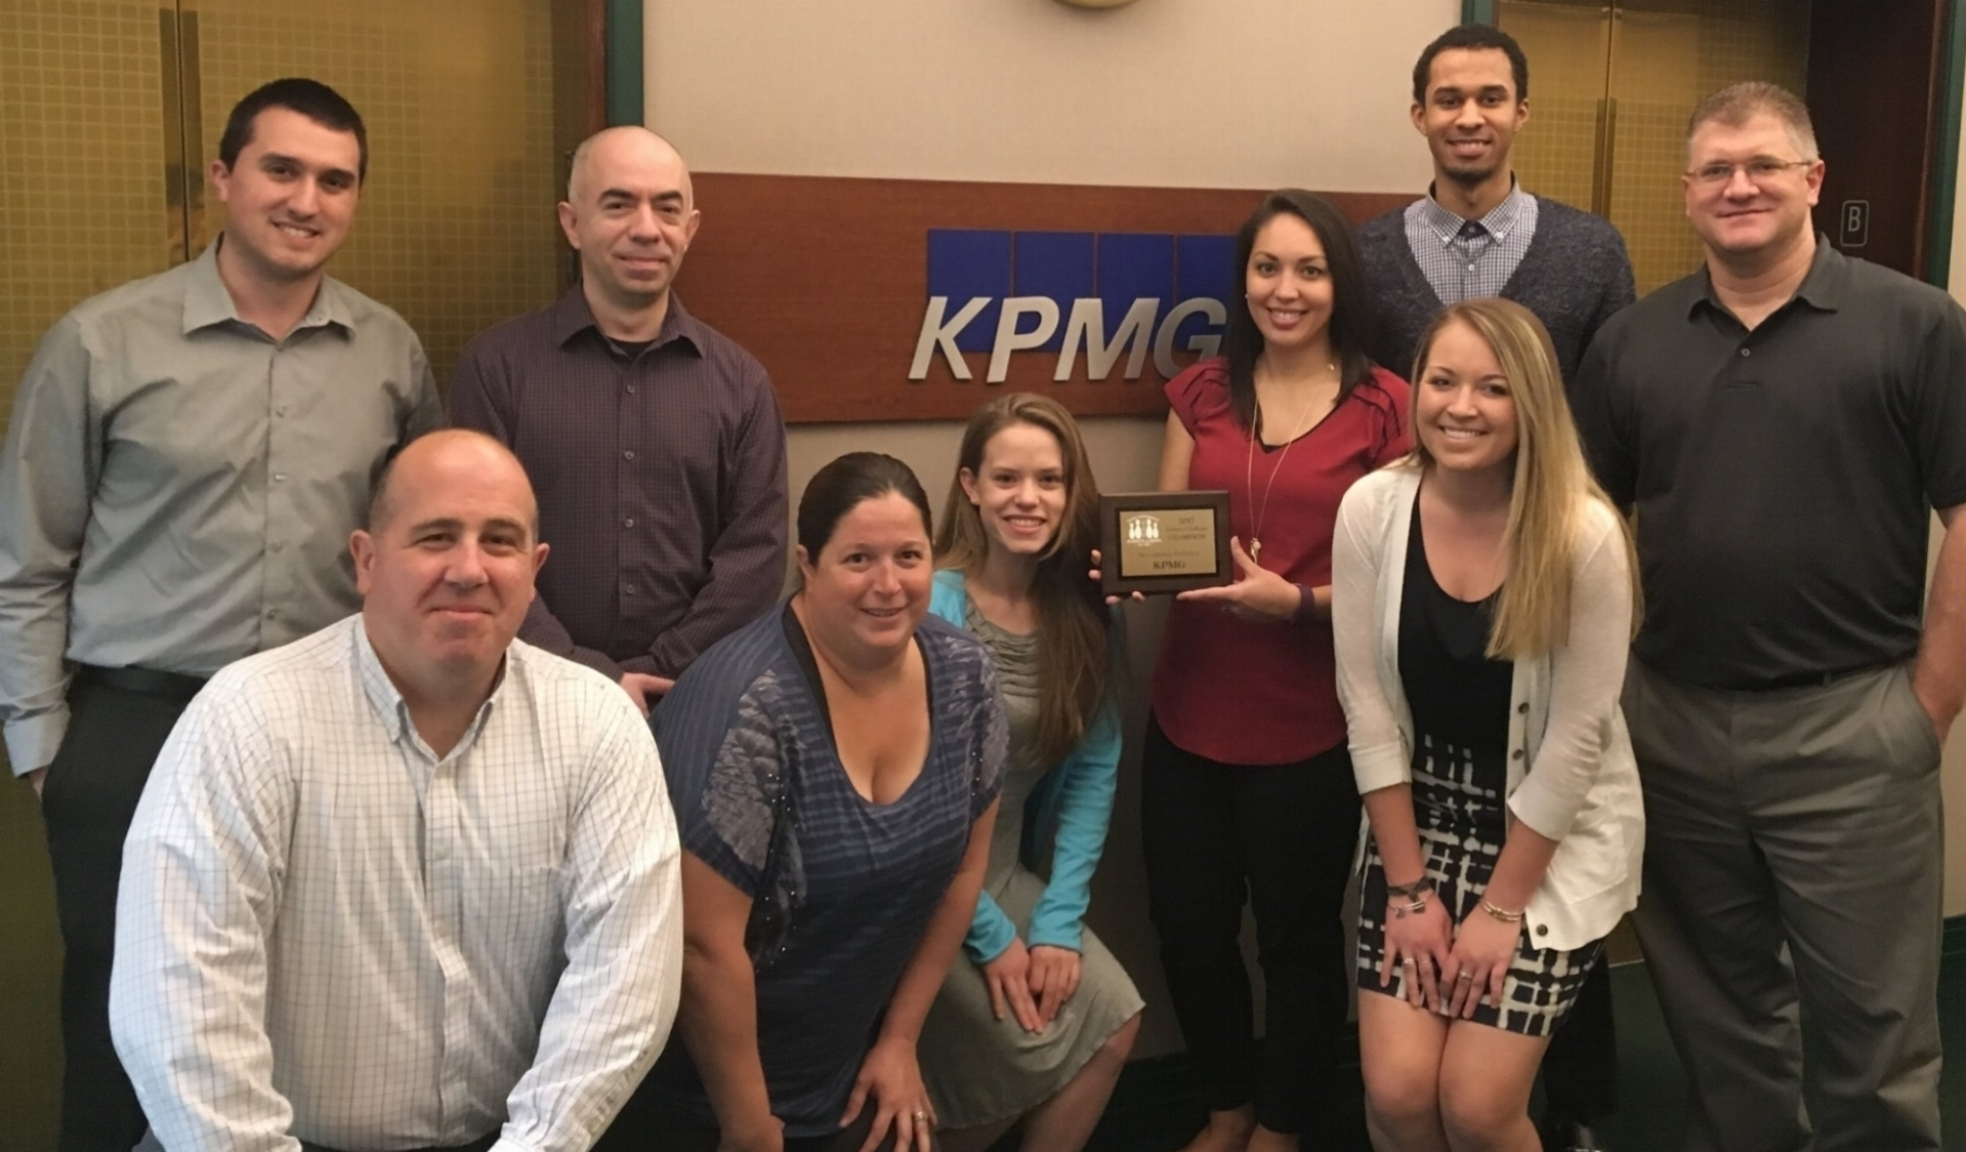 Accounting winners: KPMG.